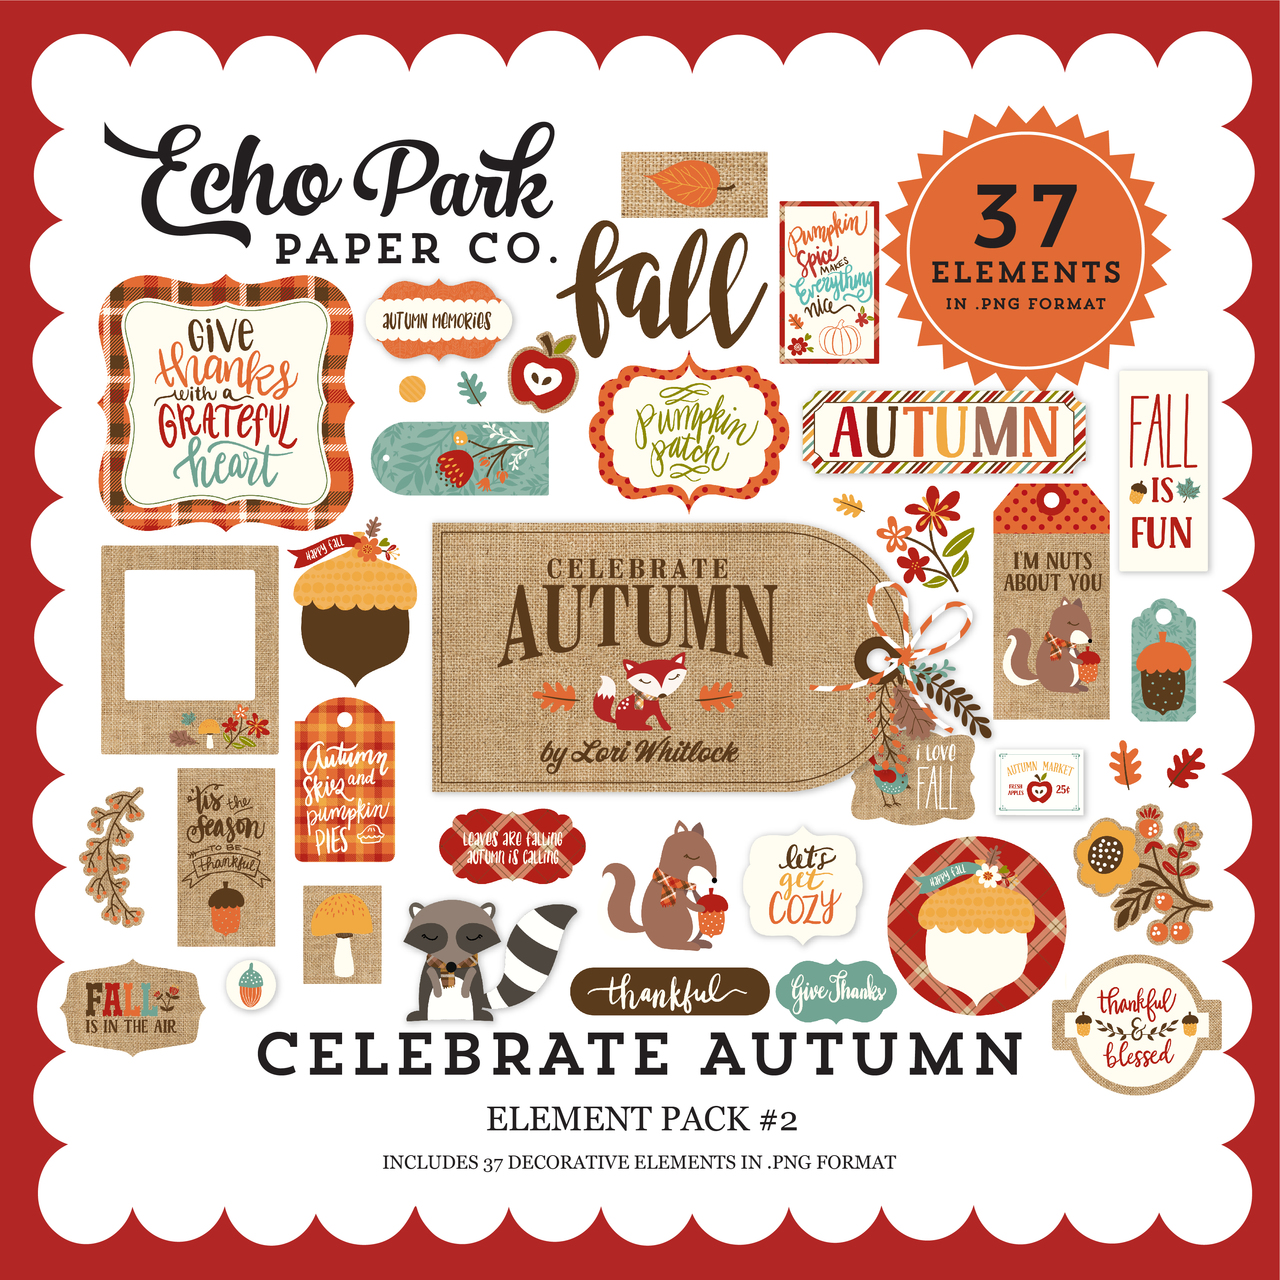 Celebrate Autumn Element Pack #2